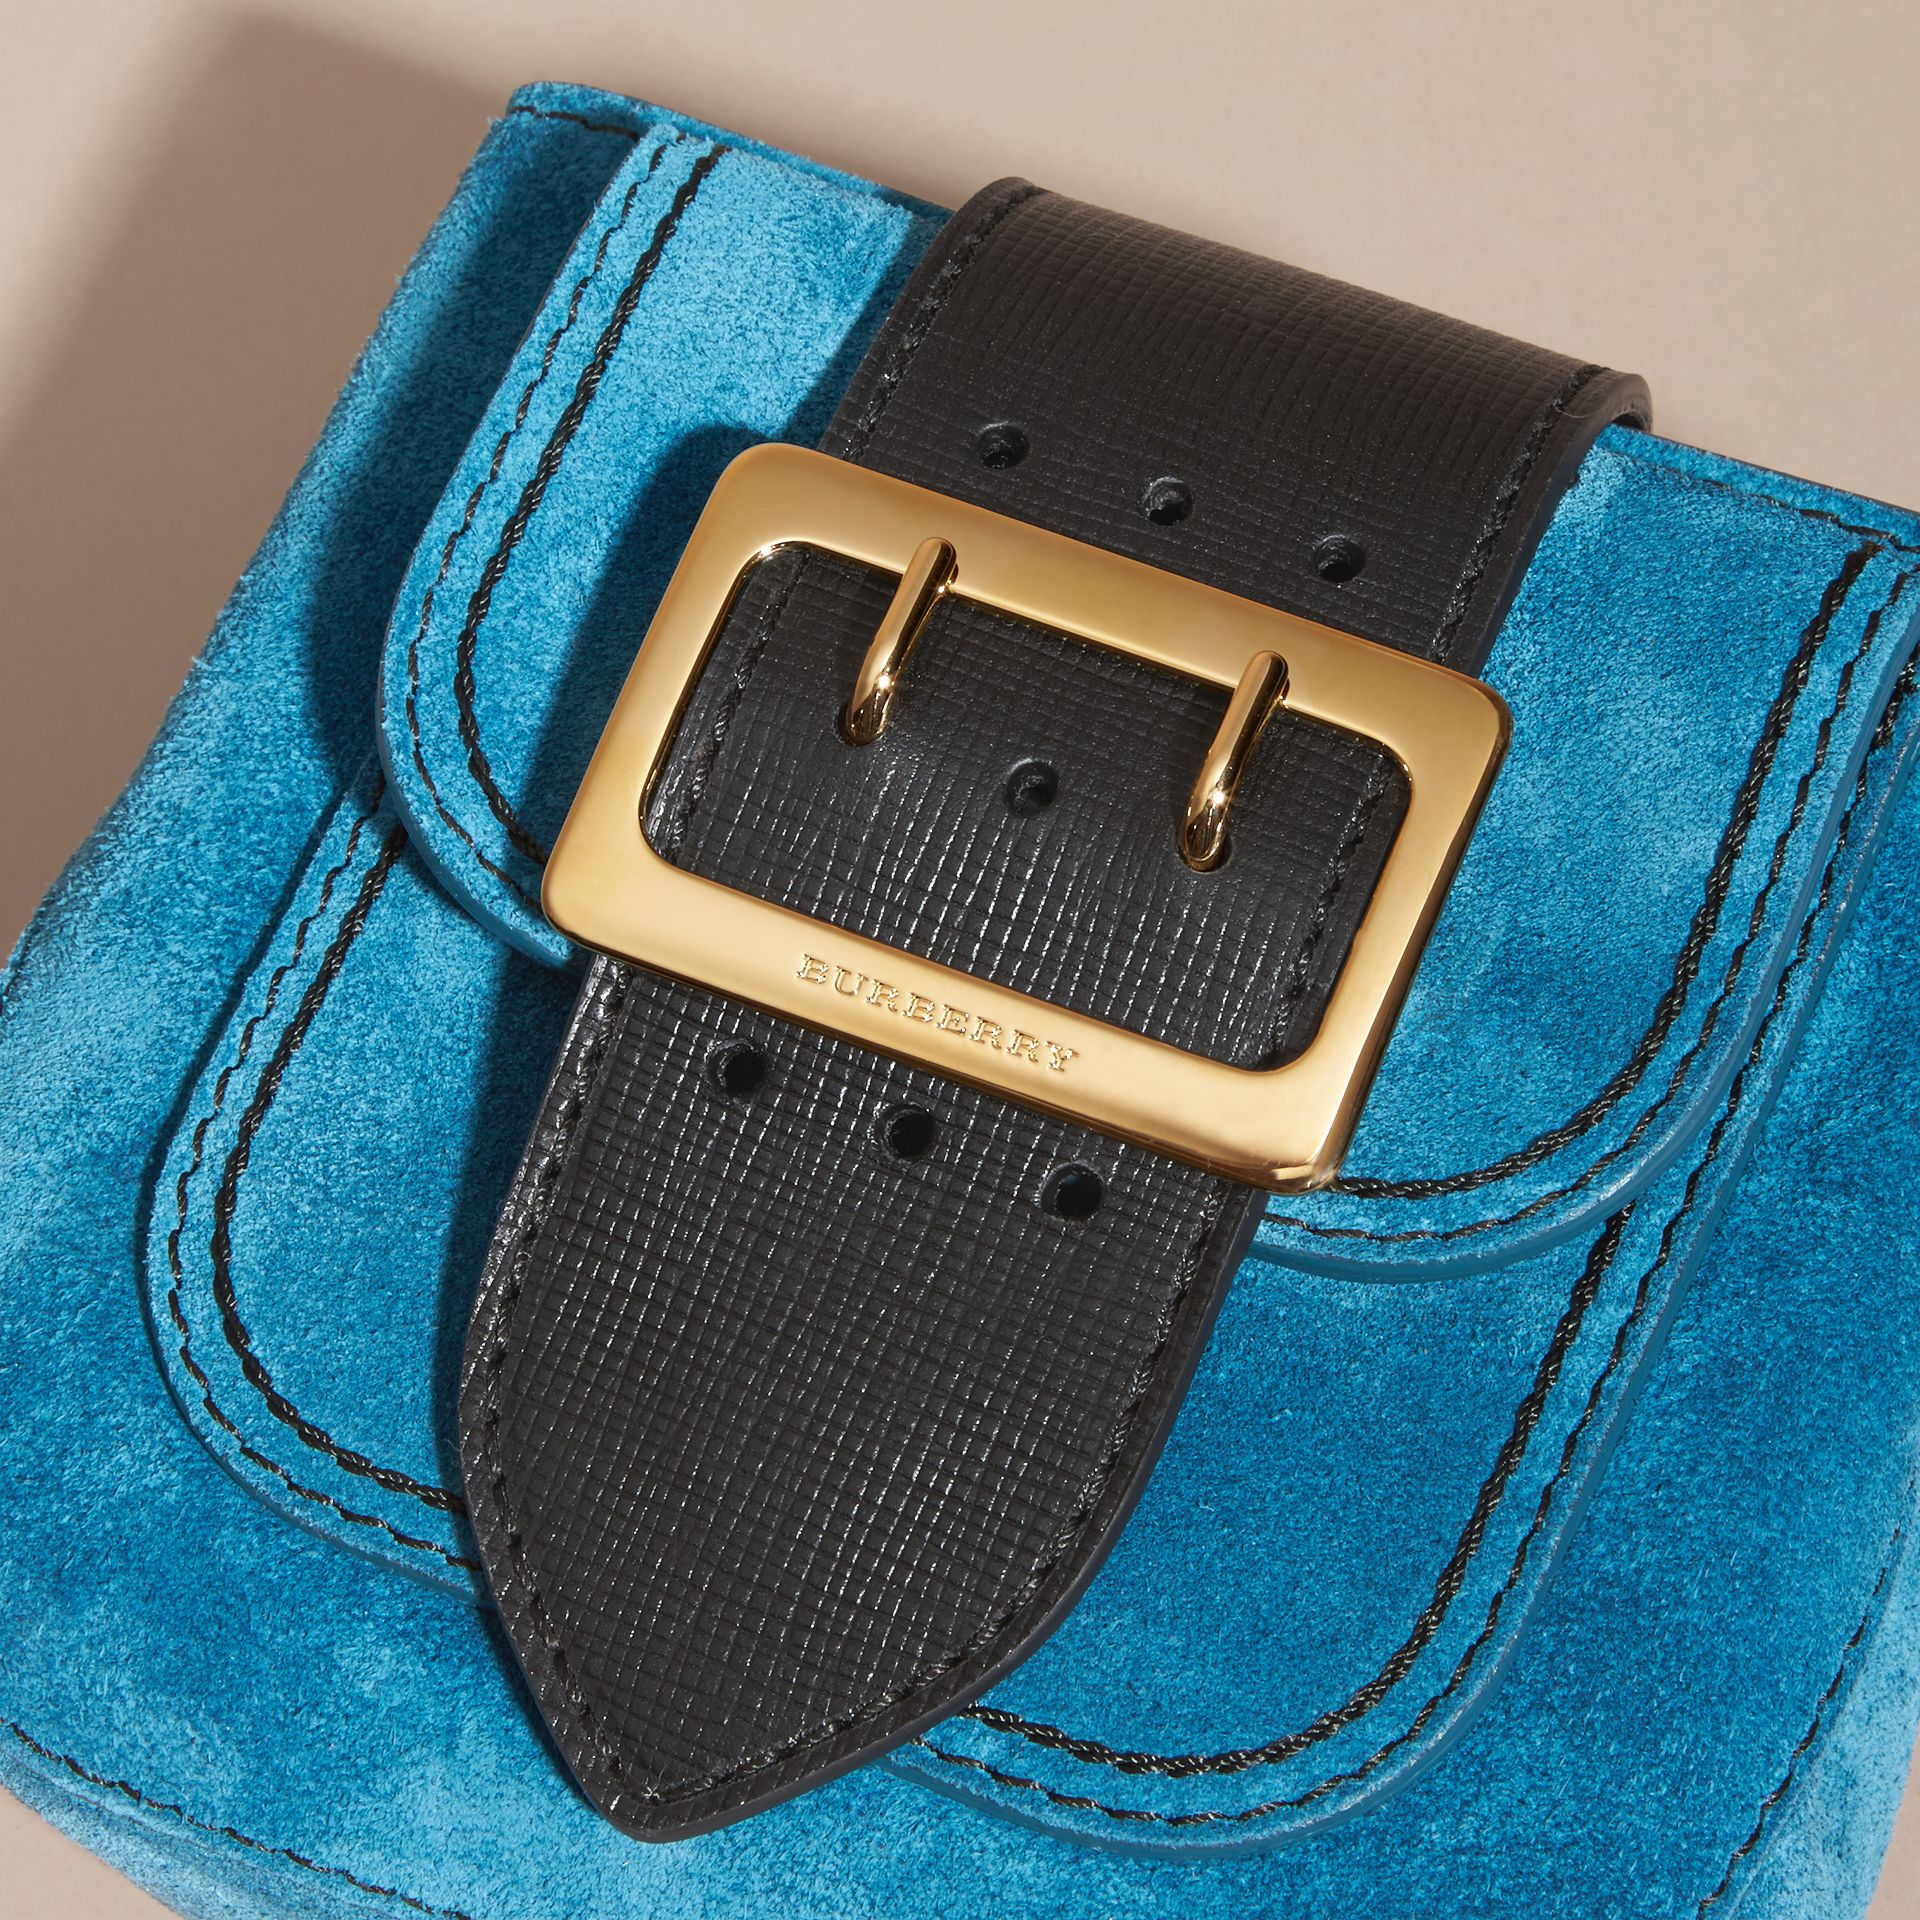 Peacock blue The Small Square Buckle Bag in Suede and Leather Peacock Blue - gallery image 2